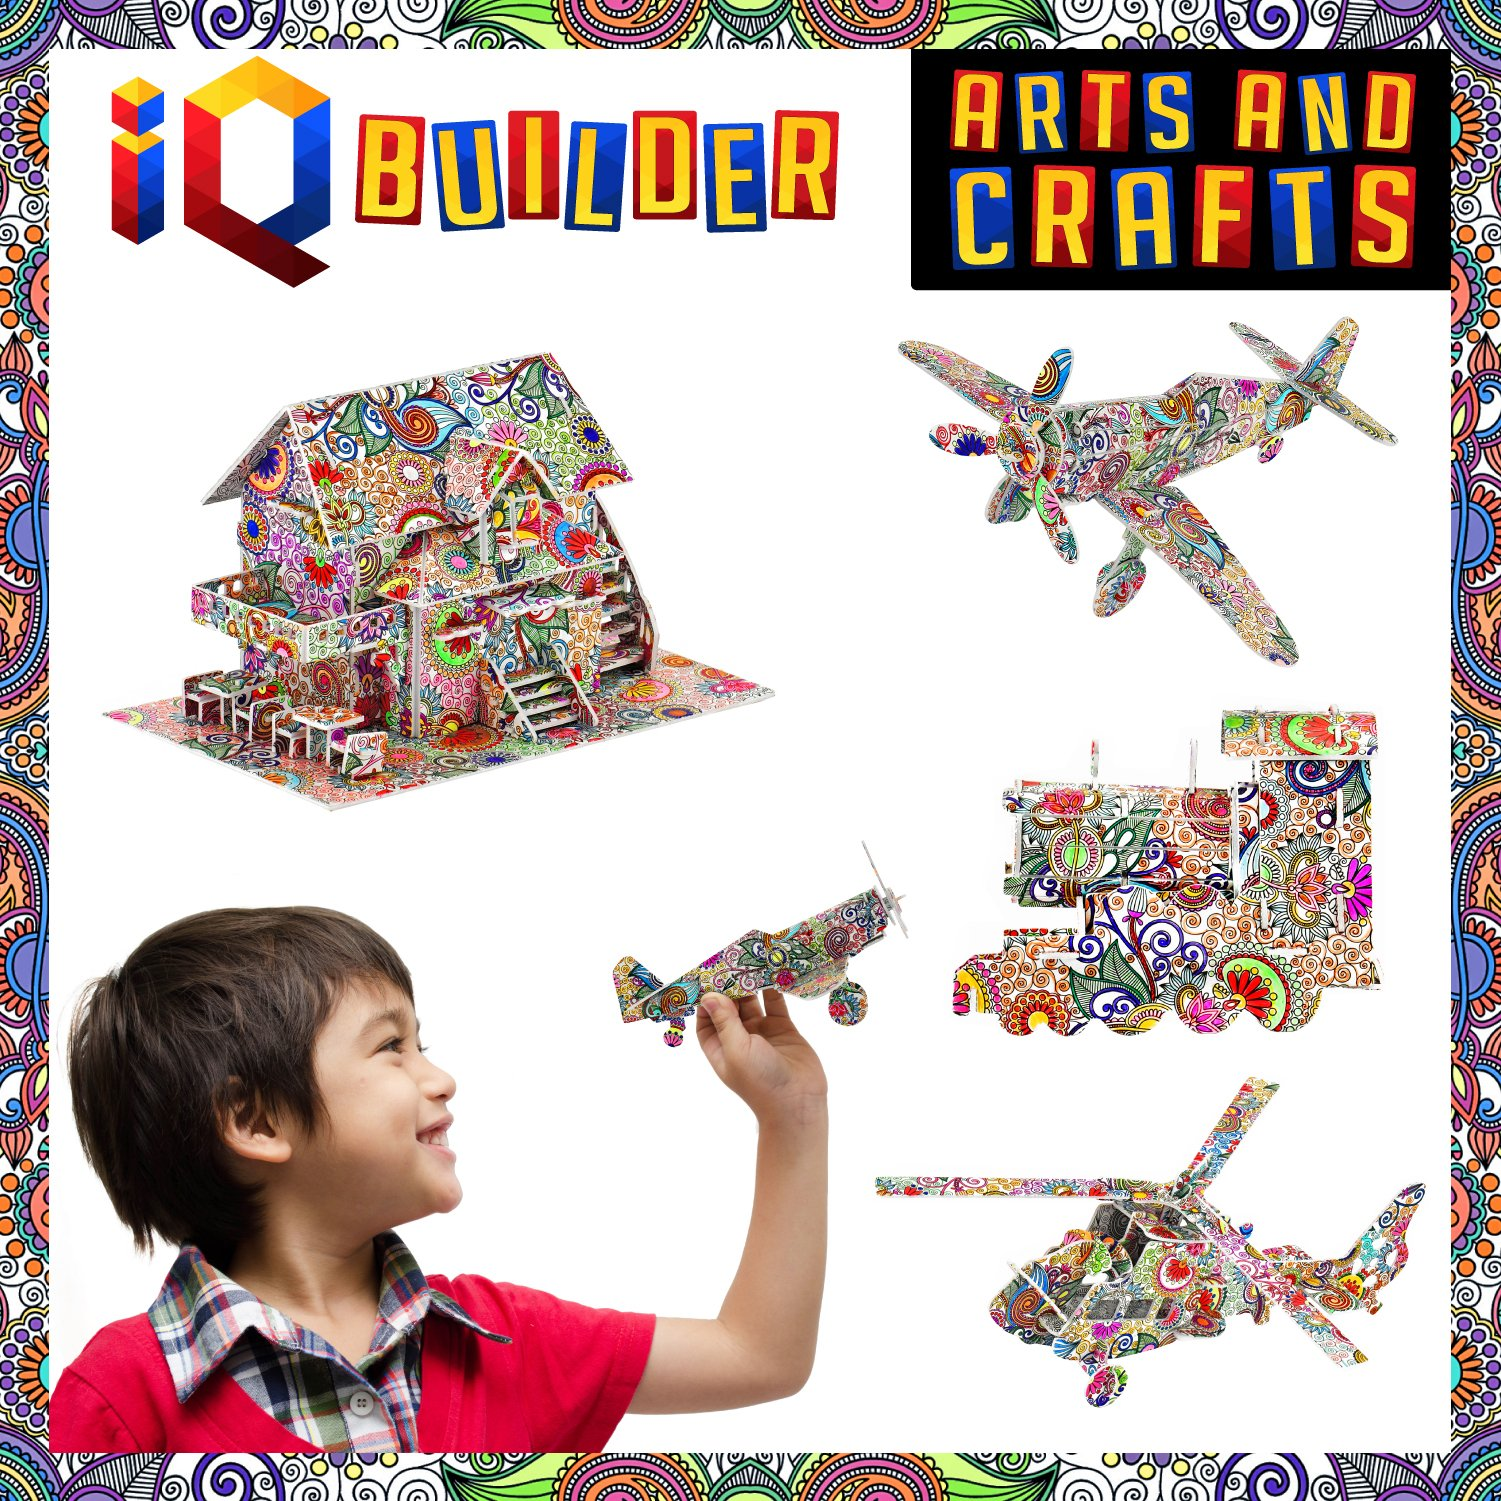 IQ BUILDER FUN CREATIVE DIY ARTS AND CRAFTS KIT   BEST TOY GIFT FOR GIRLS AND BOYS AGE 8 9 10 11 12 YEAR OLD   EDUCATIONAL ART BUILDING PAINTING COLORING 3D PUZZLE PROJECT SET FOR KIDS AND ADULTS